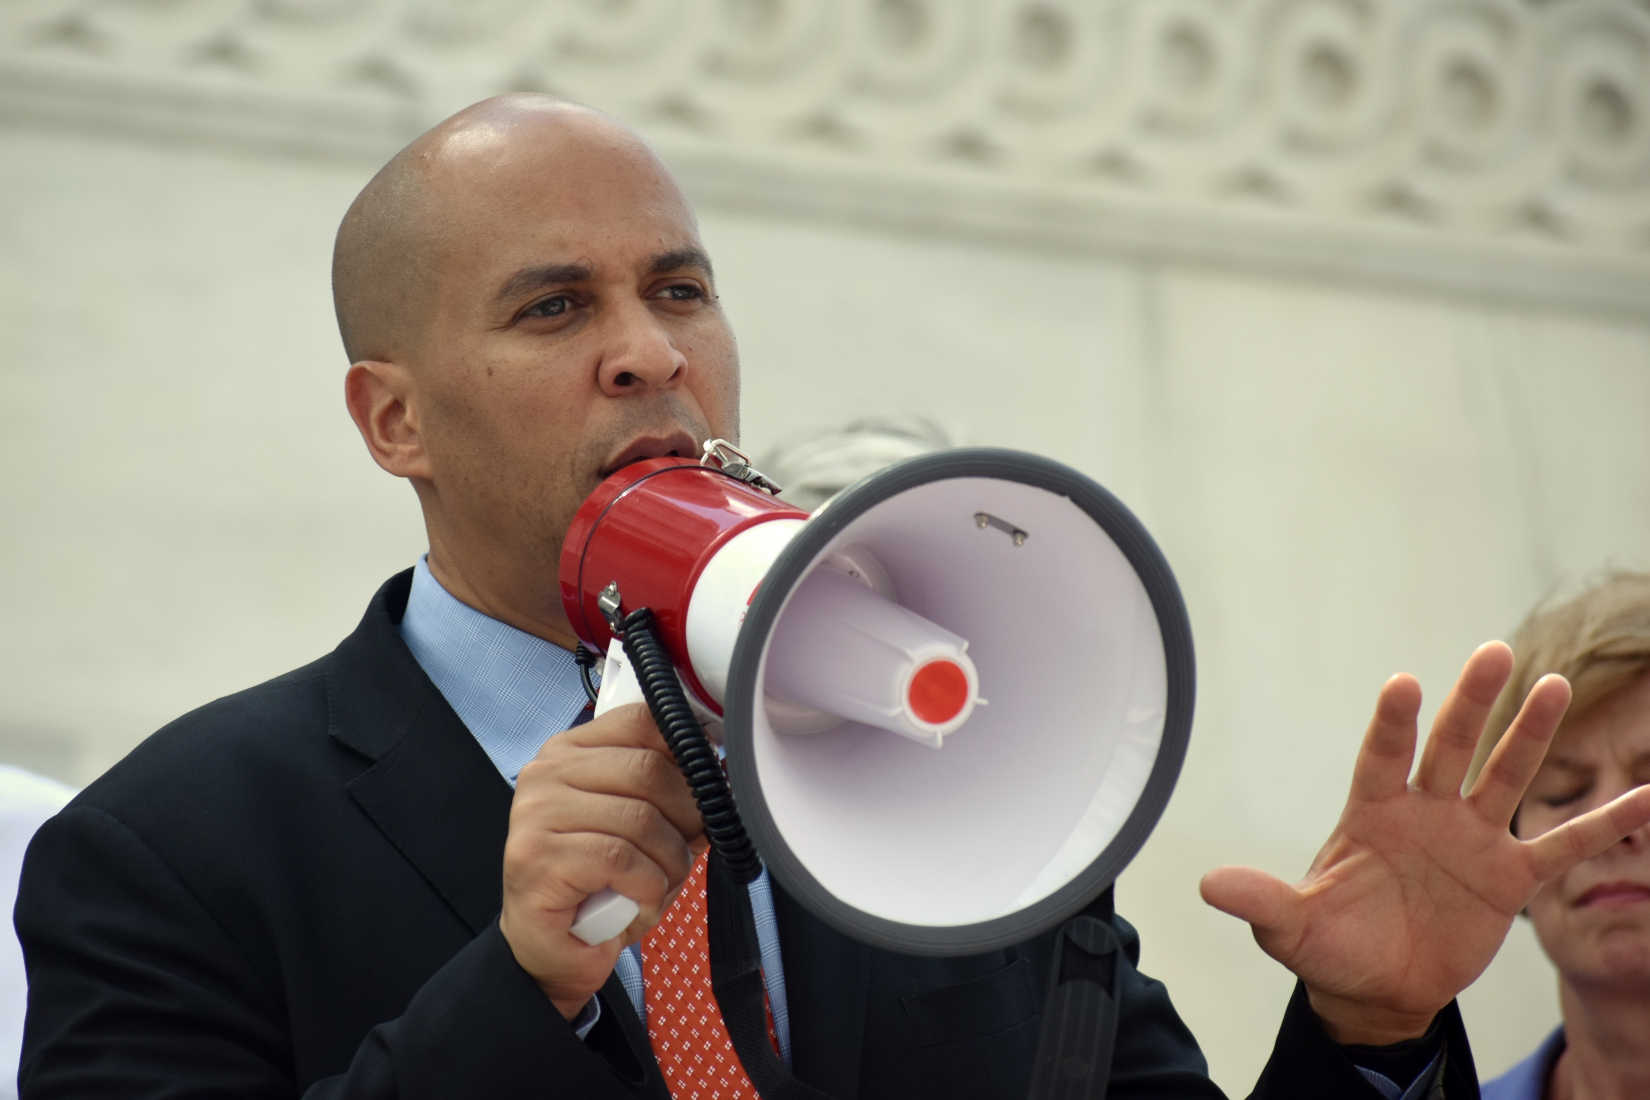 Does Cory Booker Think You Have to Go through a Background Check to Buy a Toy Gun?